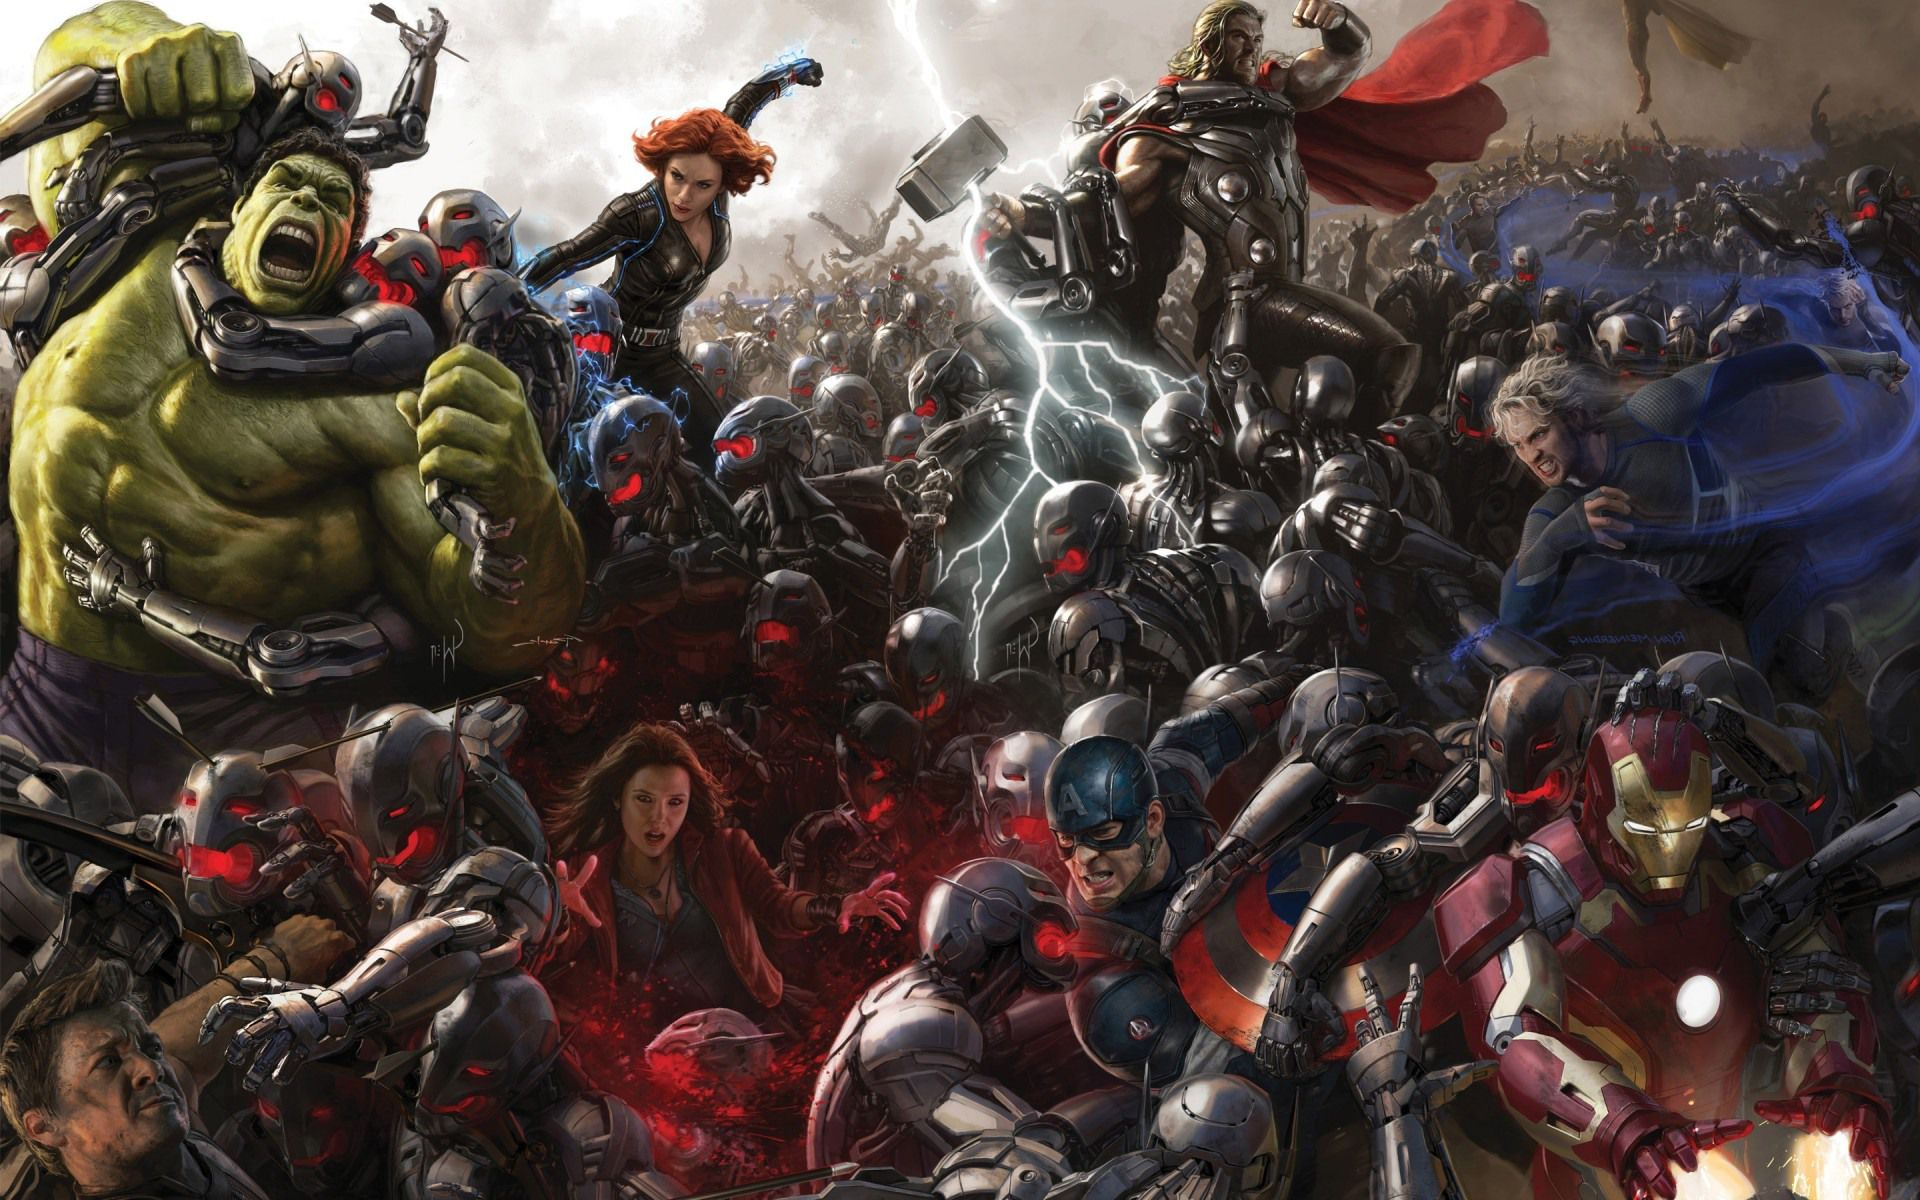 who-do-you-think-will-die-in-avengers-age-of-ultron_0